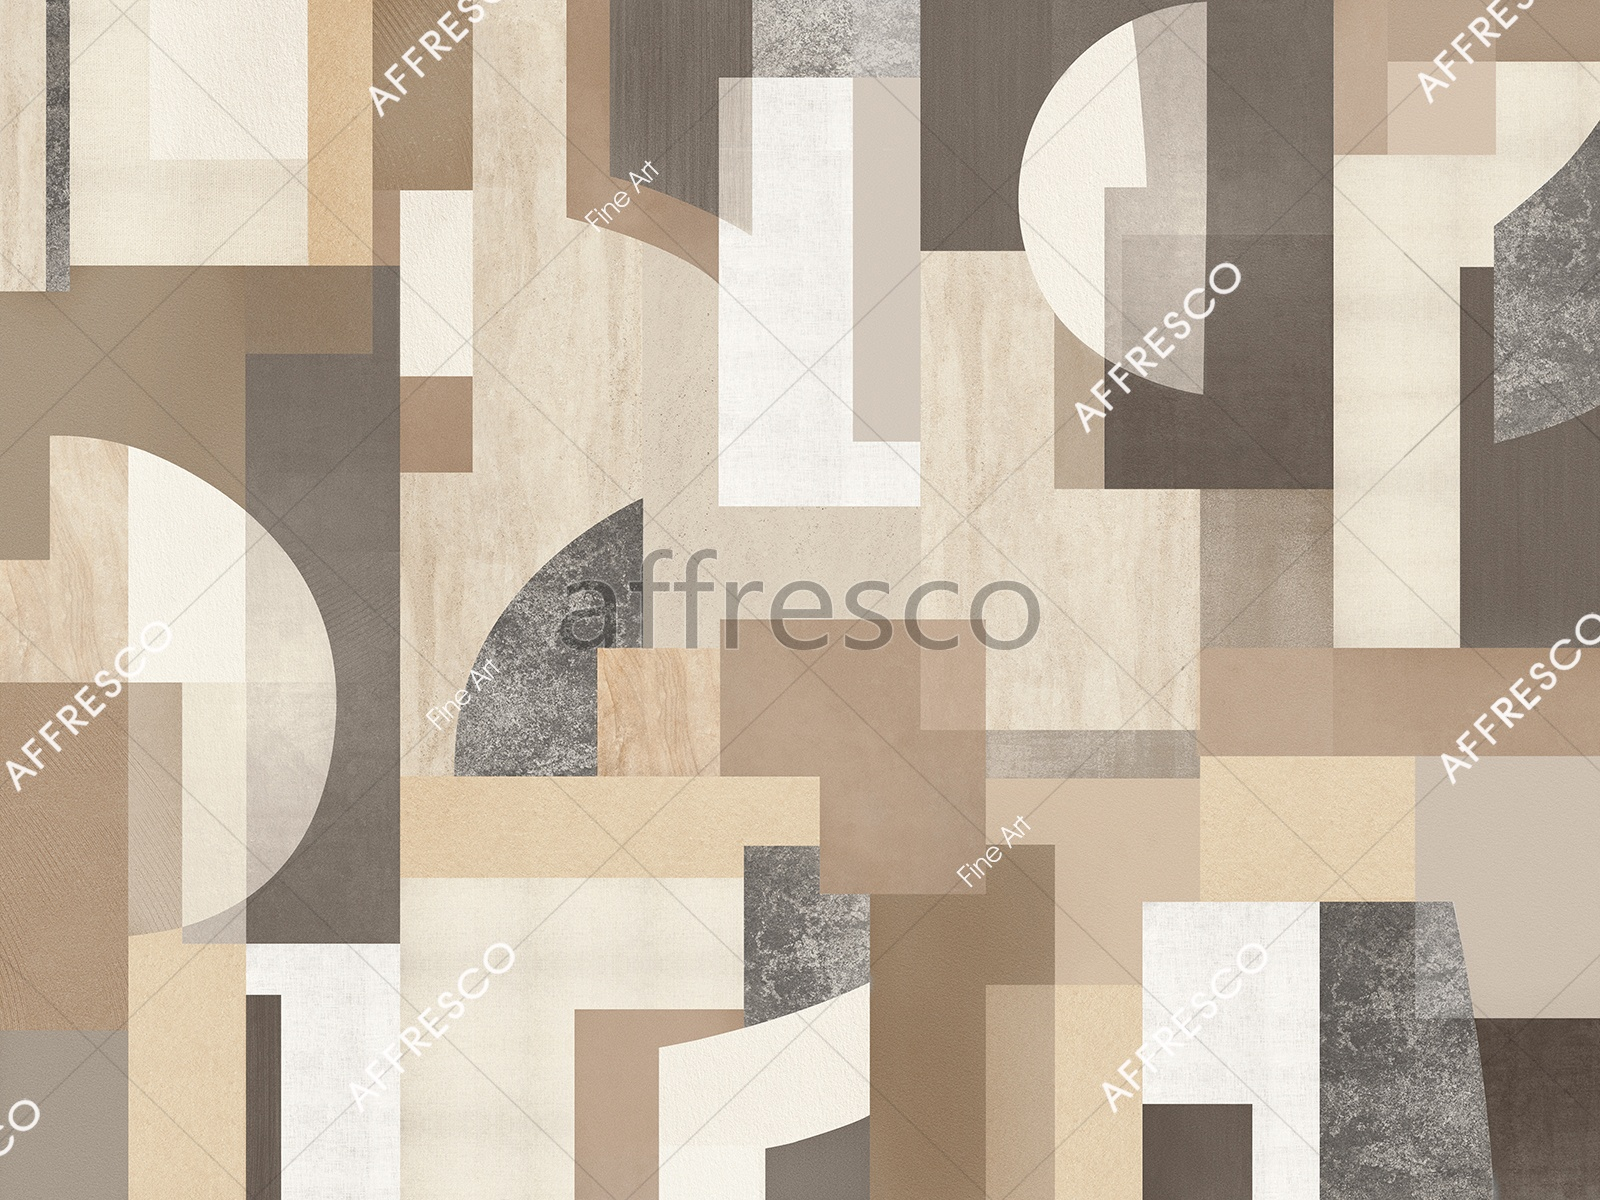 RE929-COL3 | Fine Art | Affresco Factory